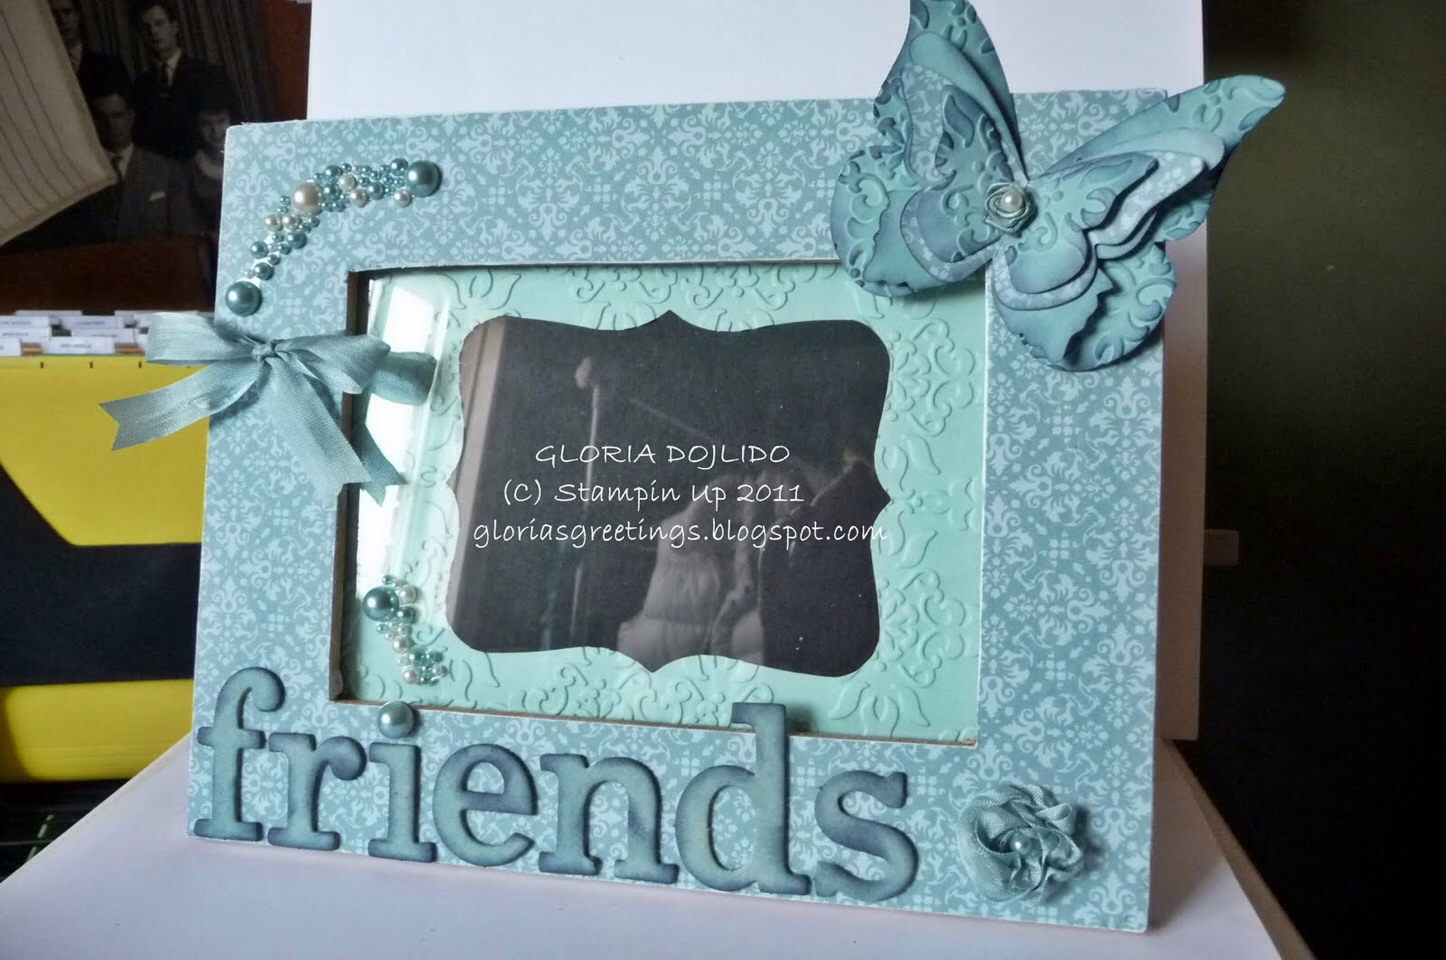 Funny photos of you and your friends is cute. It's an accessory and a memory in one